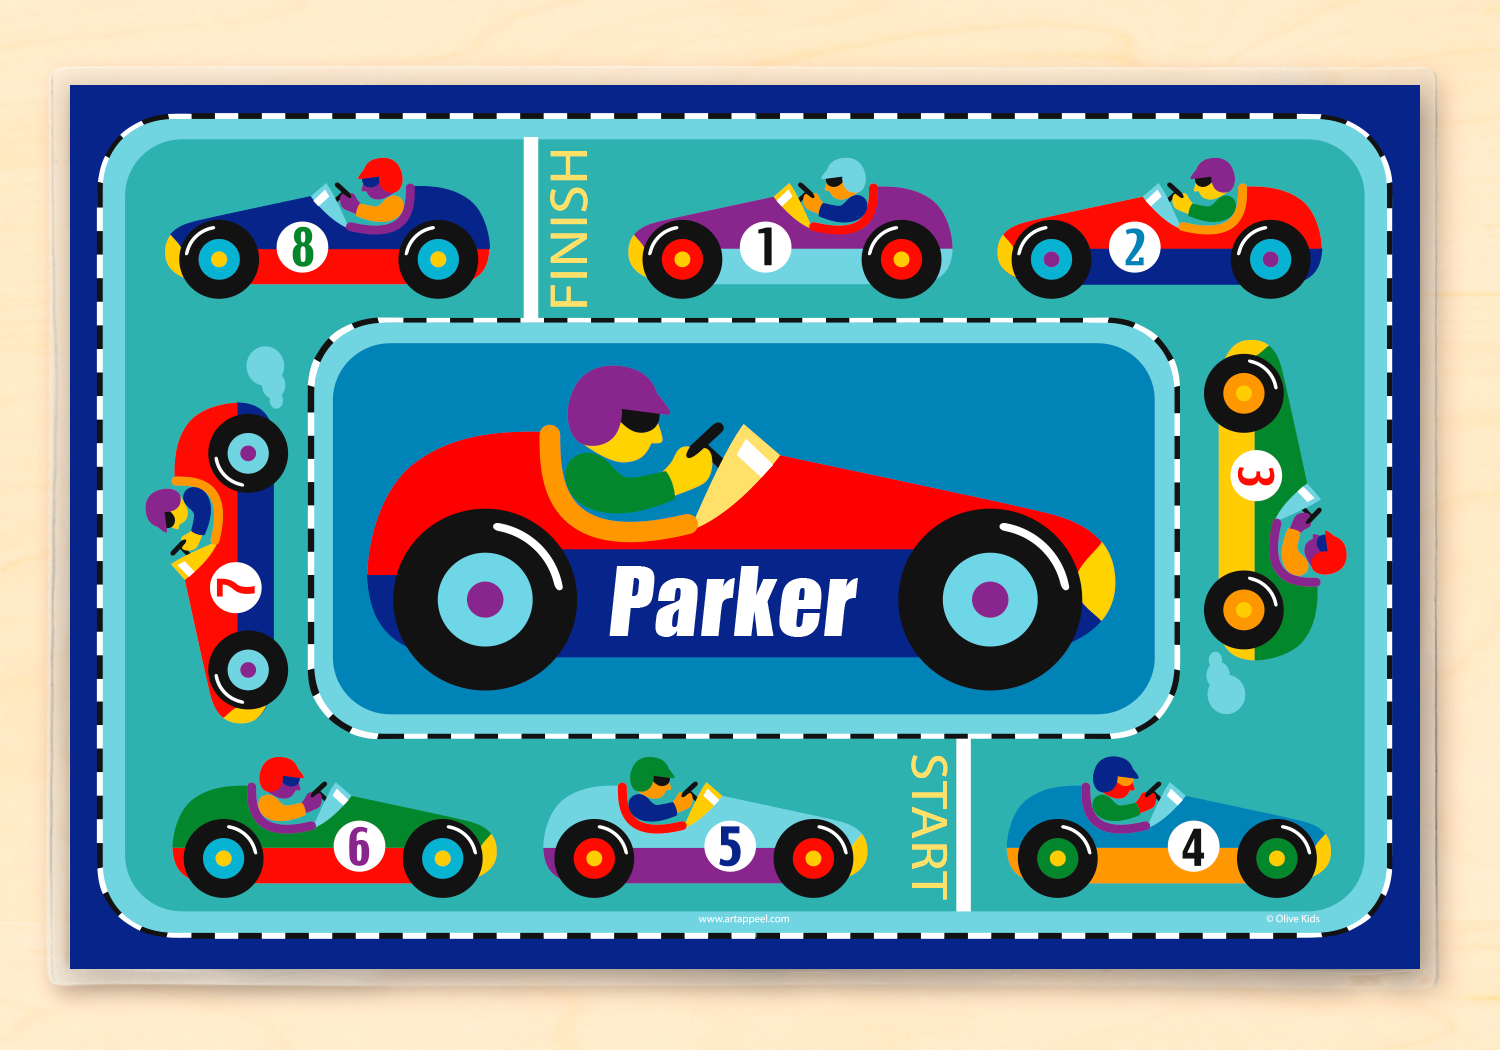 c3b0fc7c4f1b5 Vroom Race Car Personalized Kids Placemat